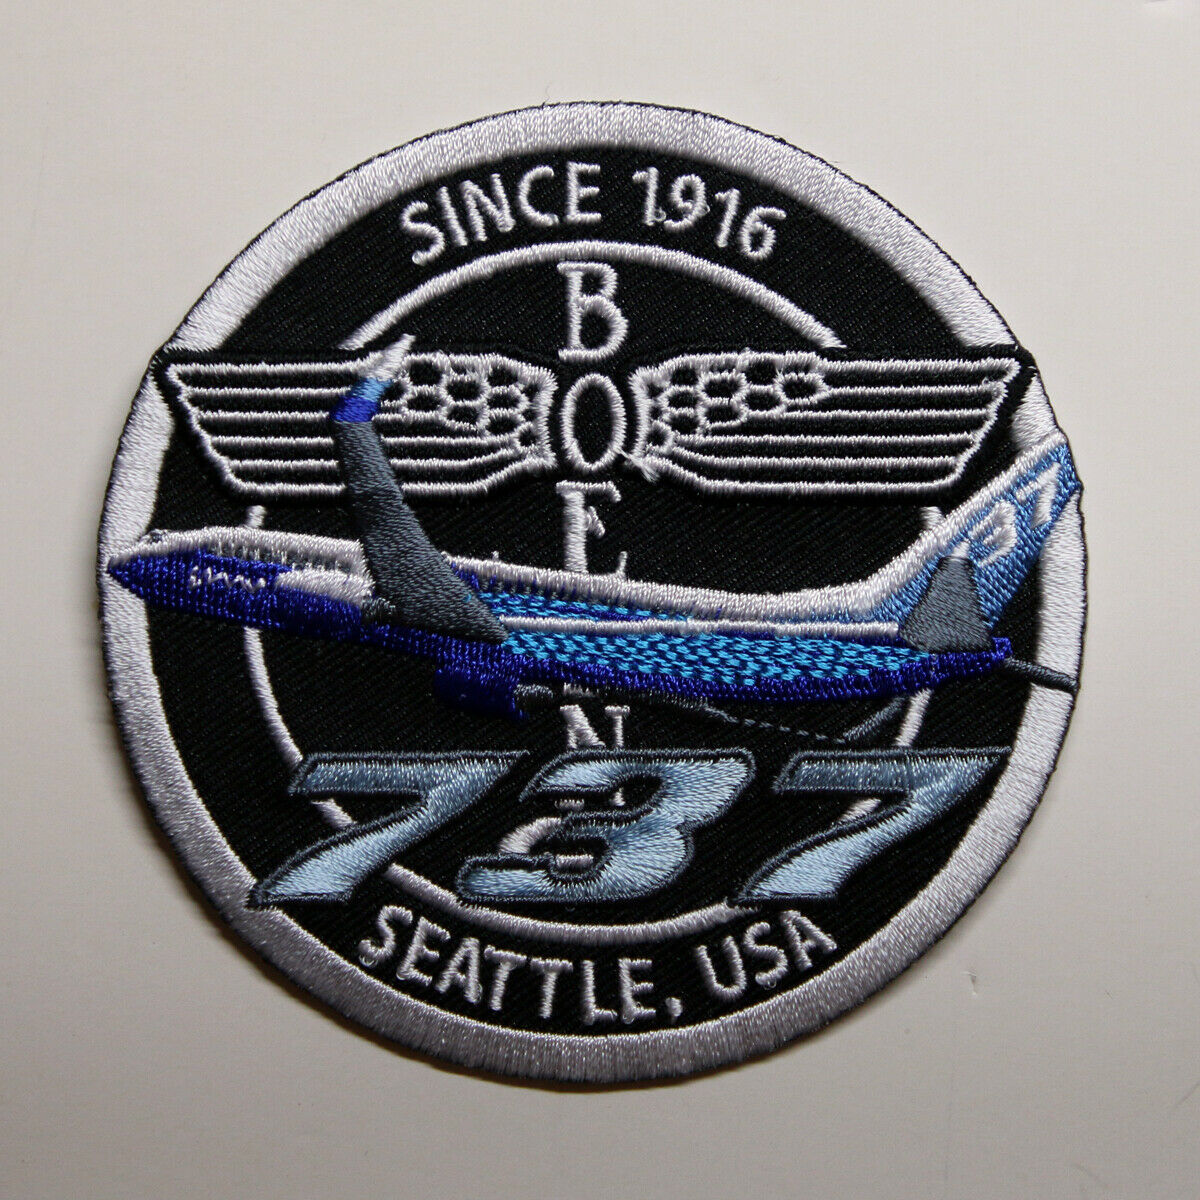 PATCH Boeing B737 Bomber Pilot Jacket sew-on or iron-on large fabric 737